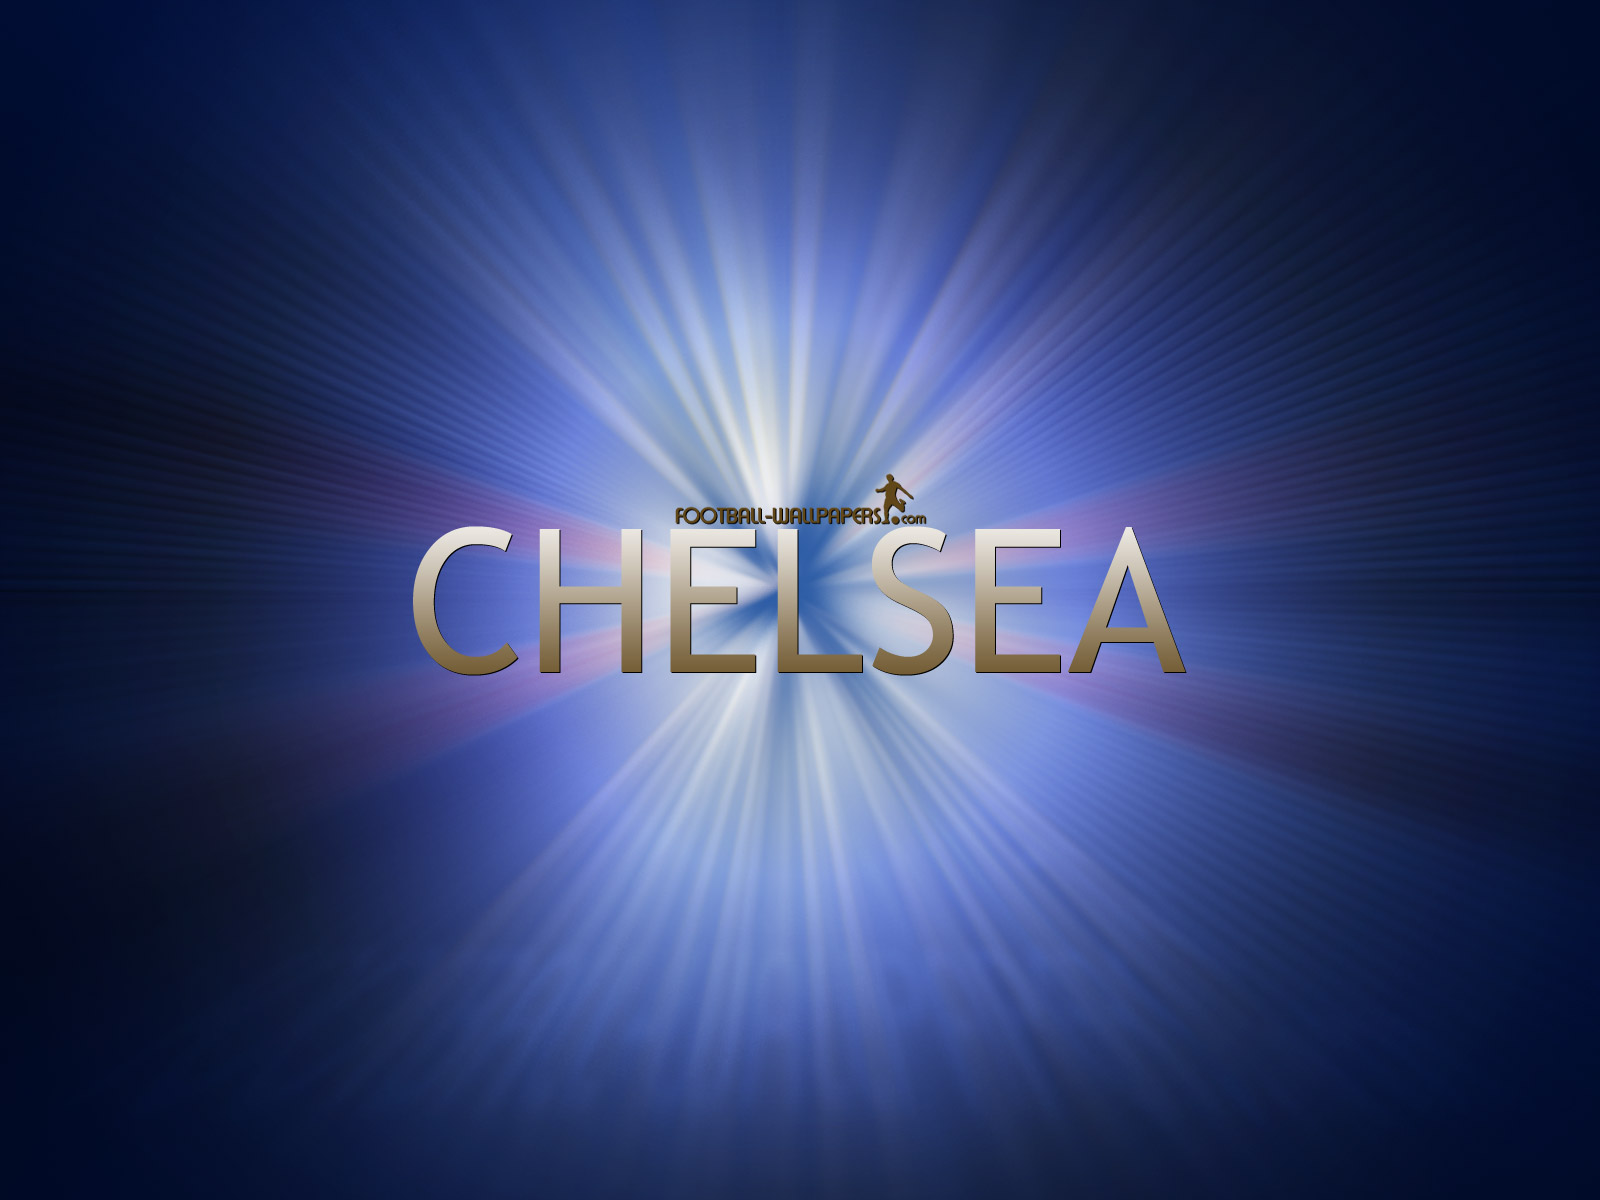 Epl Football Wallpaper For Android: Chelsea FC